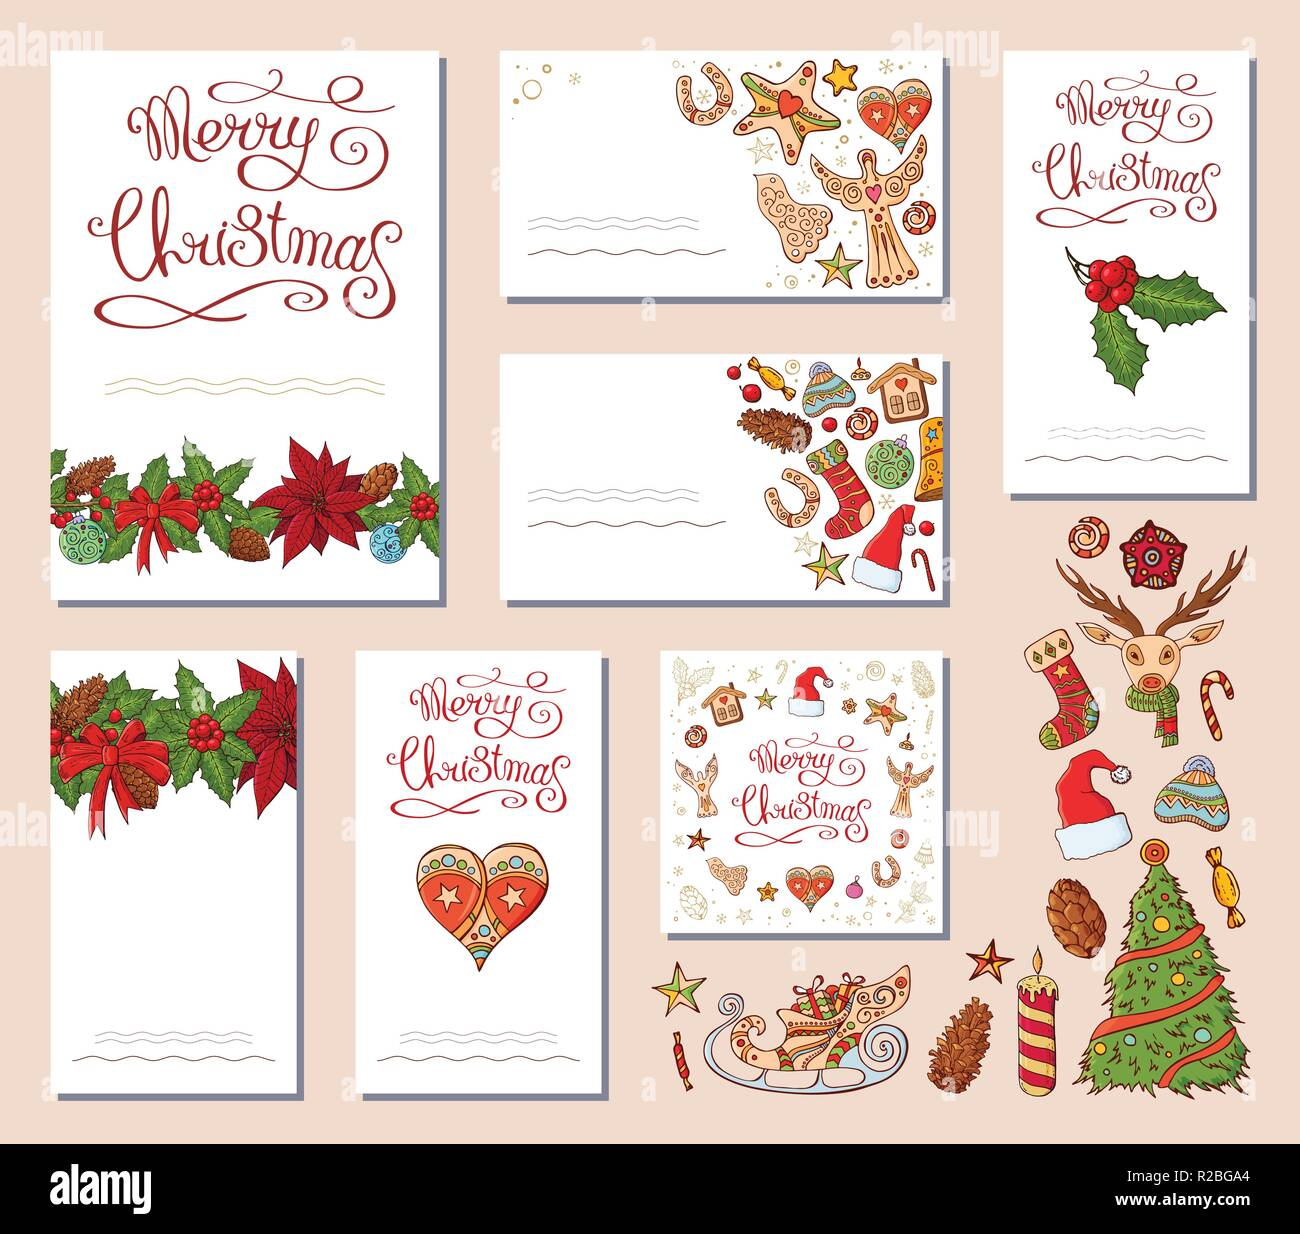 festive templates with different traditional christmas symbols and